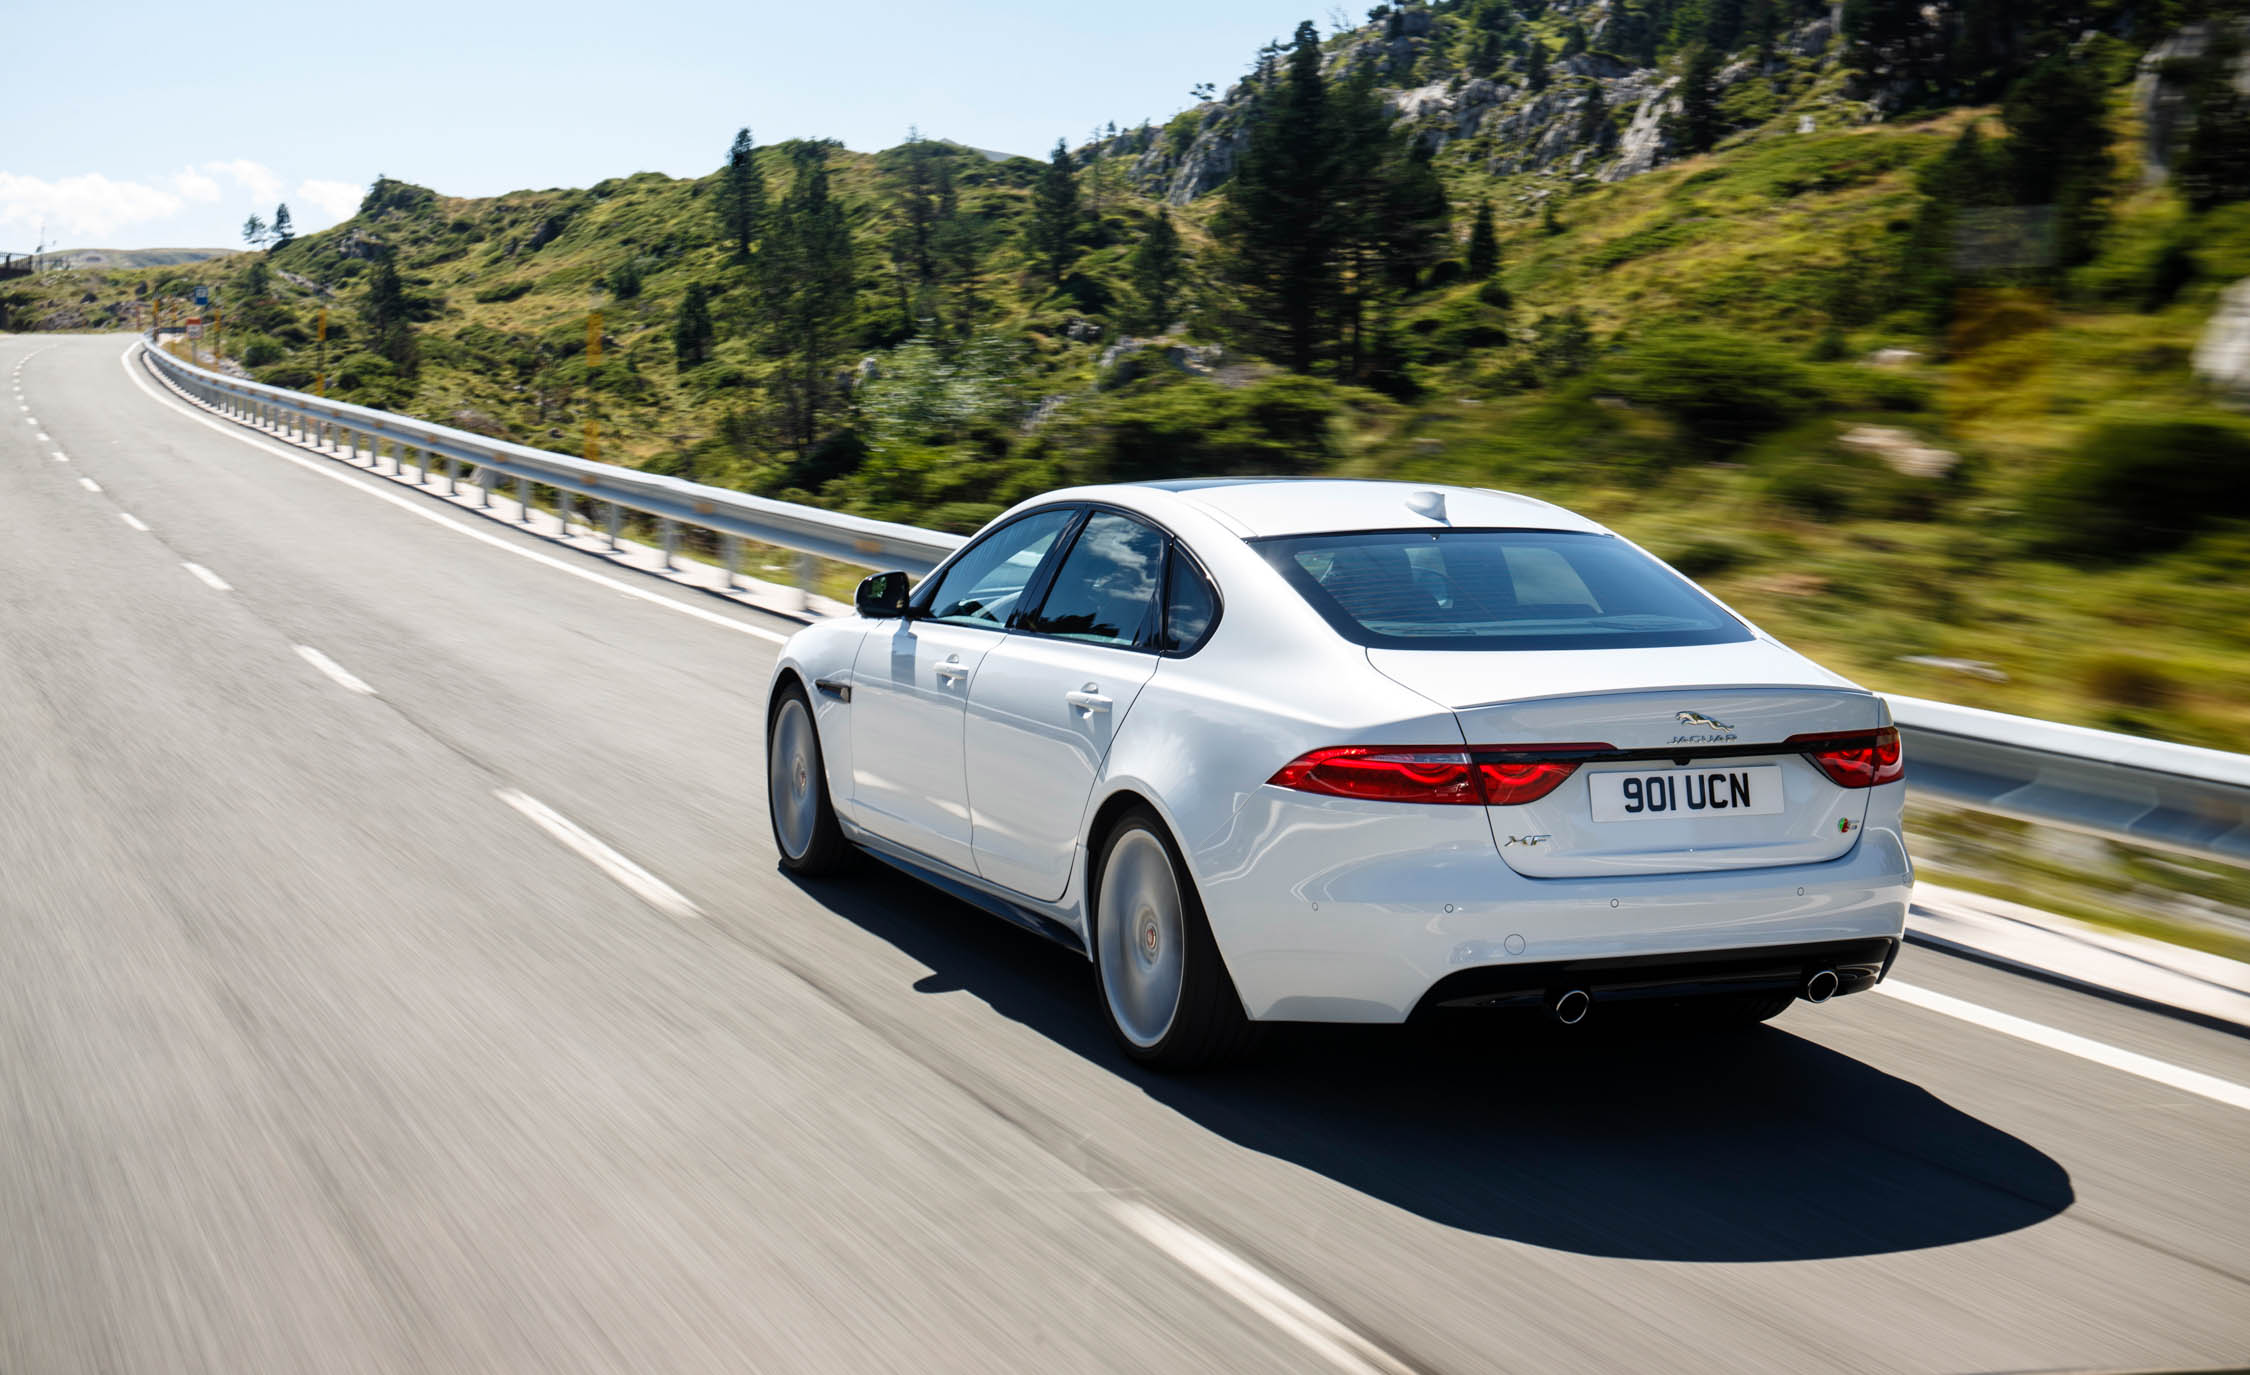 2018 Jaguar XF White Test Drive Rear View (View 2 of 3)